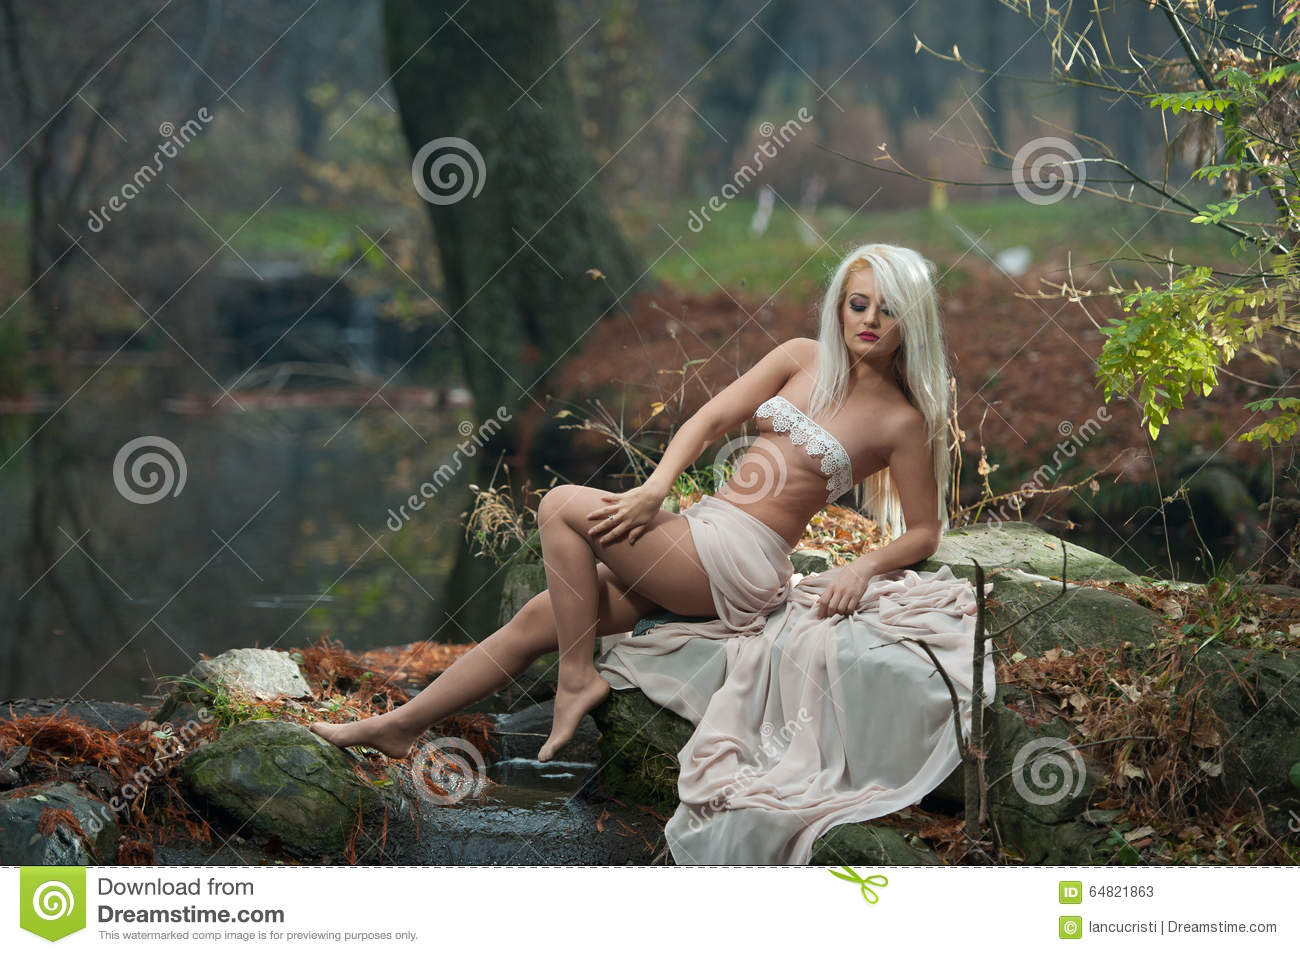 Are sensual lady in woods remarkable, rather